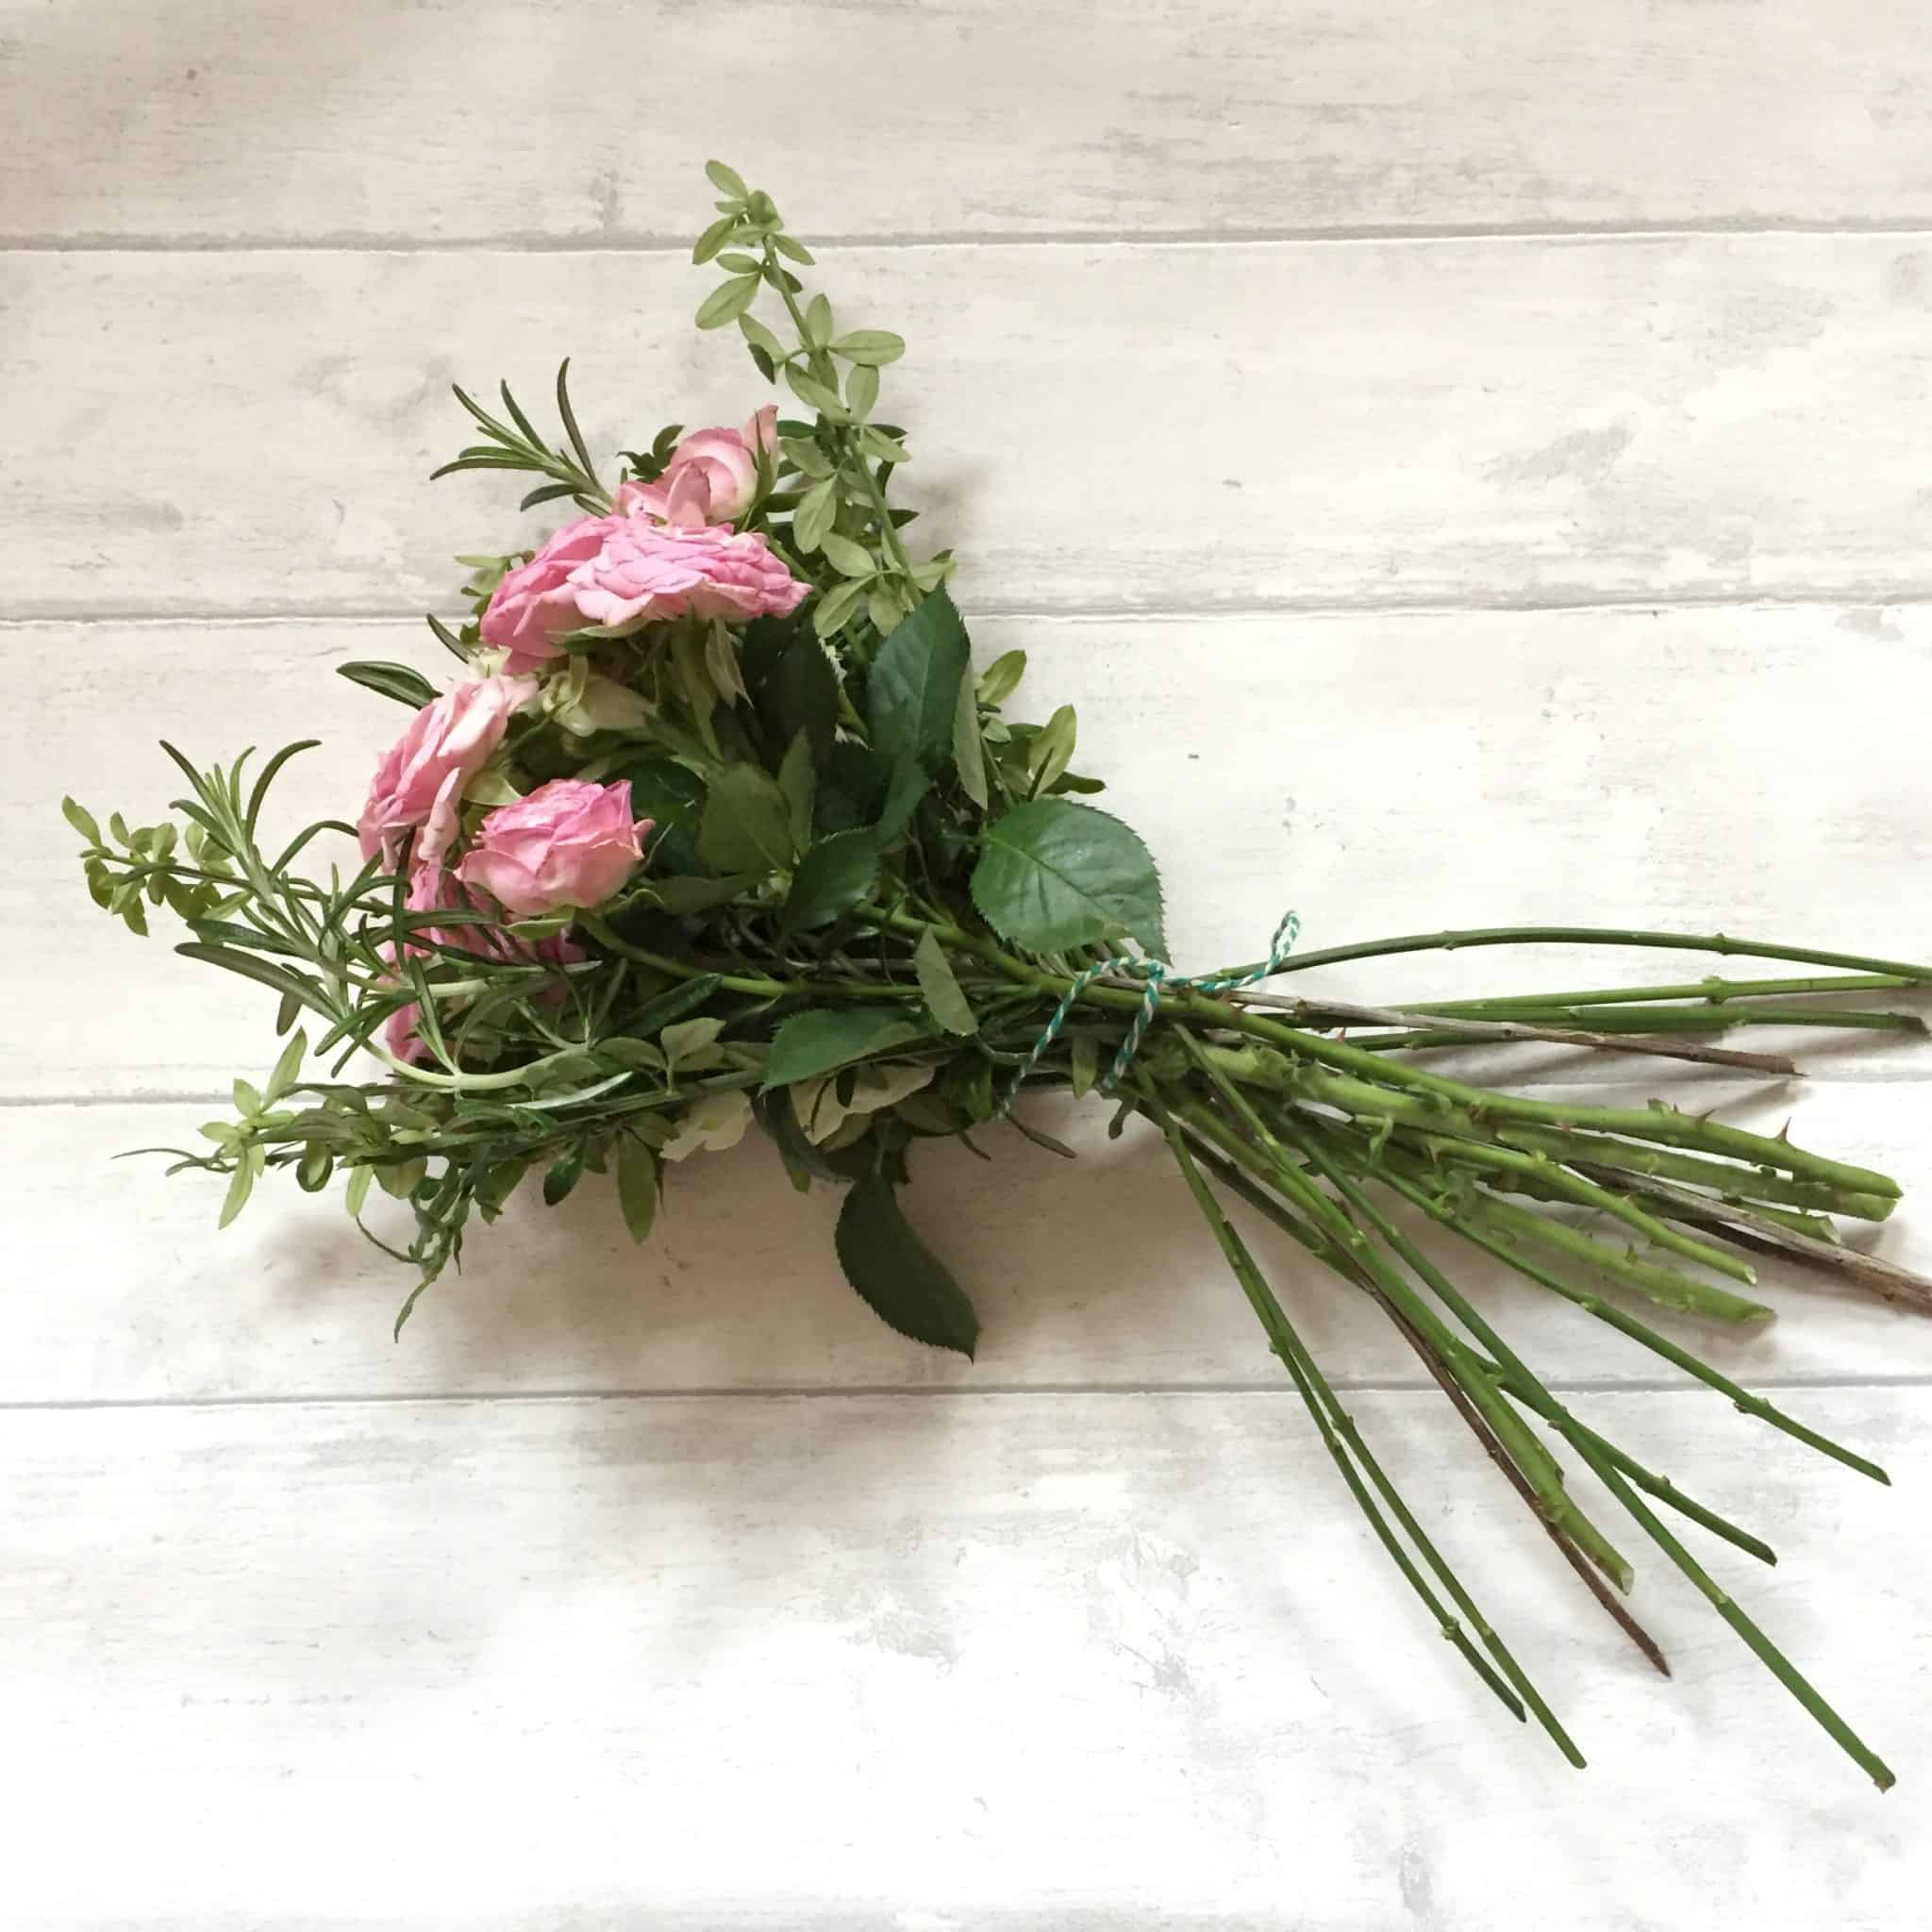 How to arrange flowers: handmade arrangement